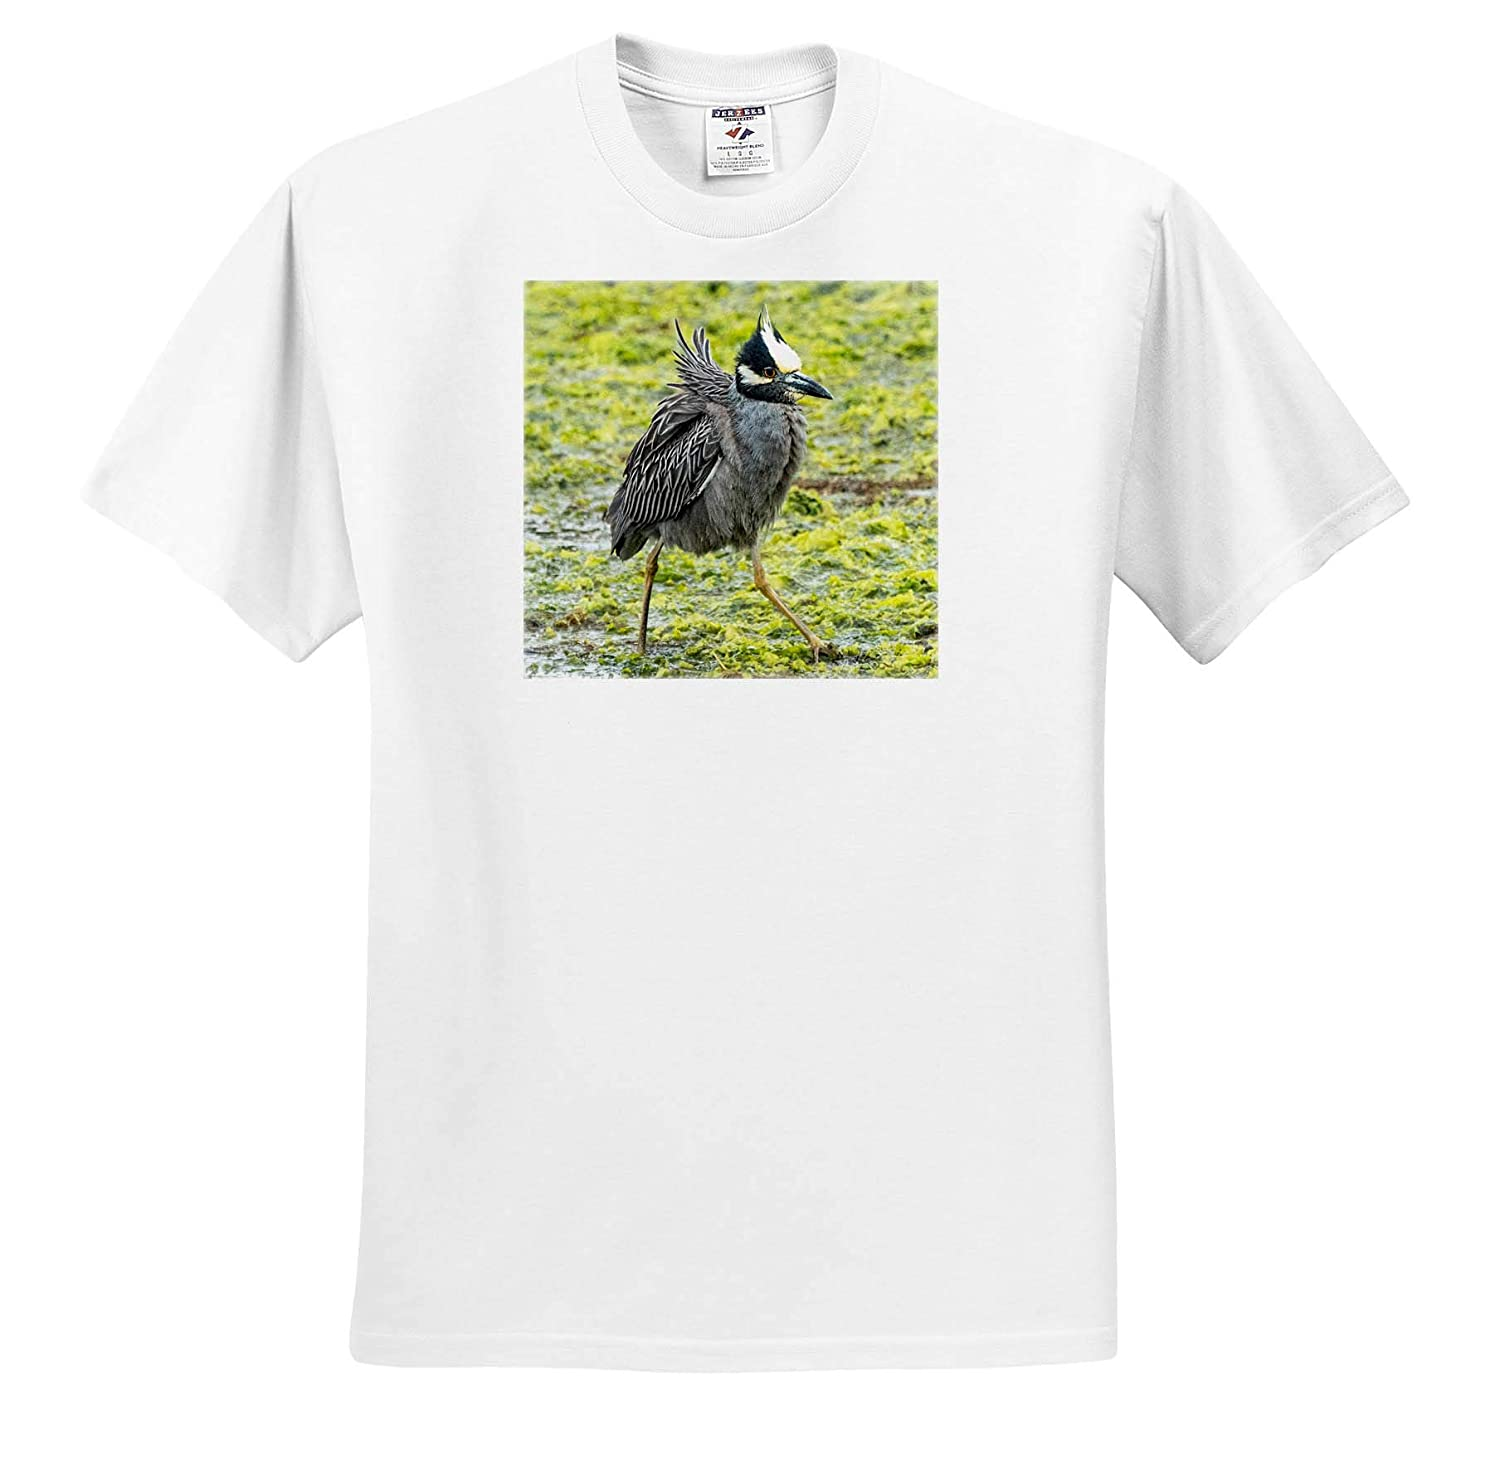 3dRose Roni Chastain Photography Yellow Crowned Night Heron T-Shirts